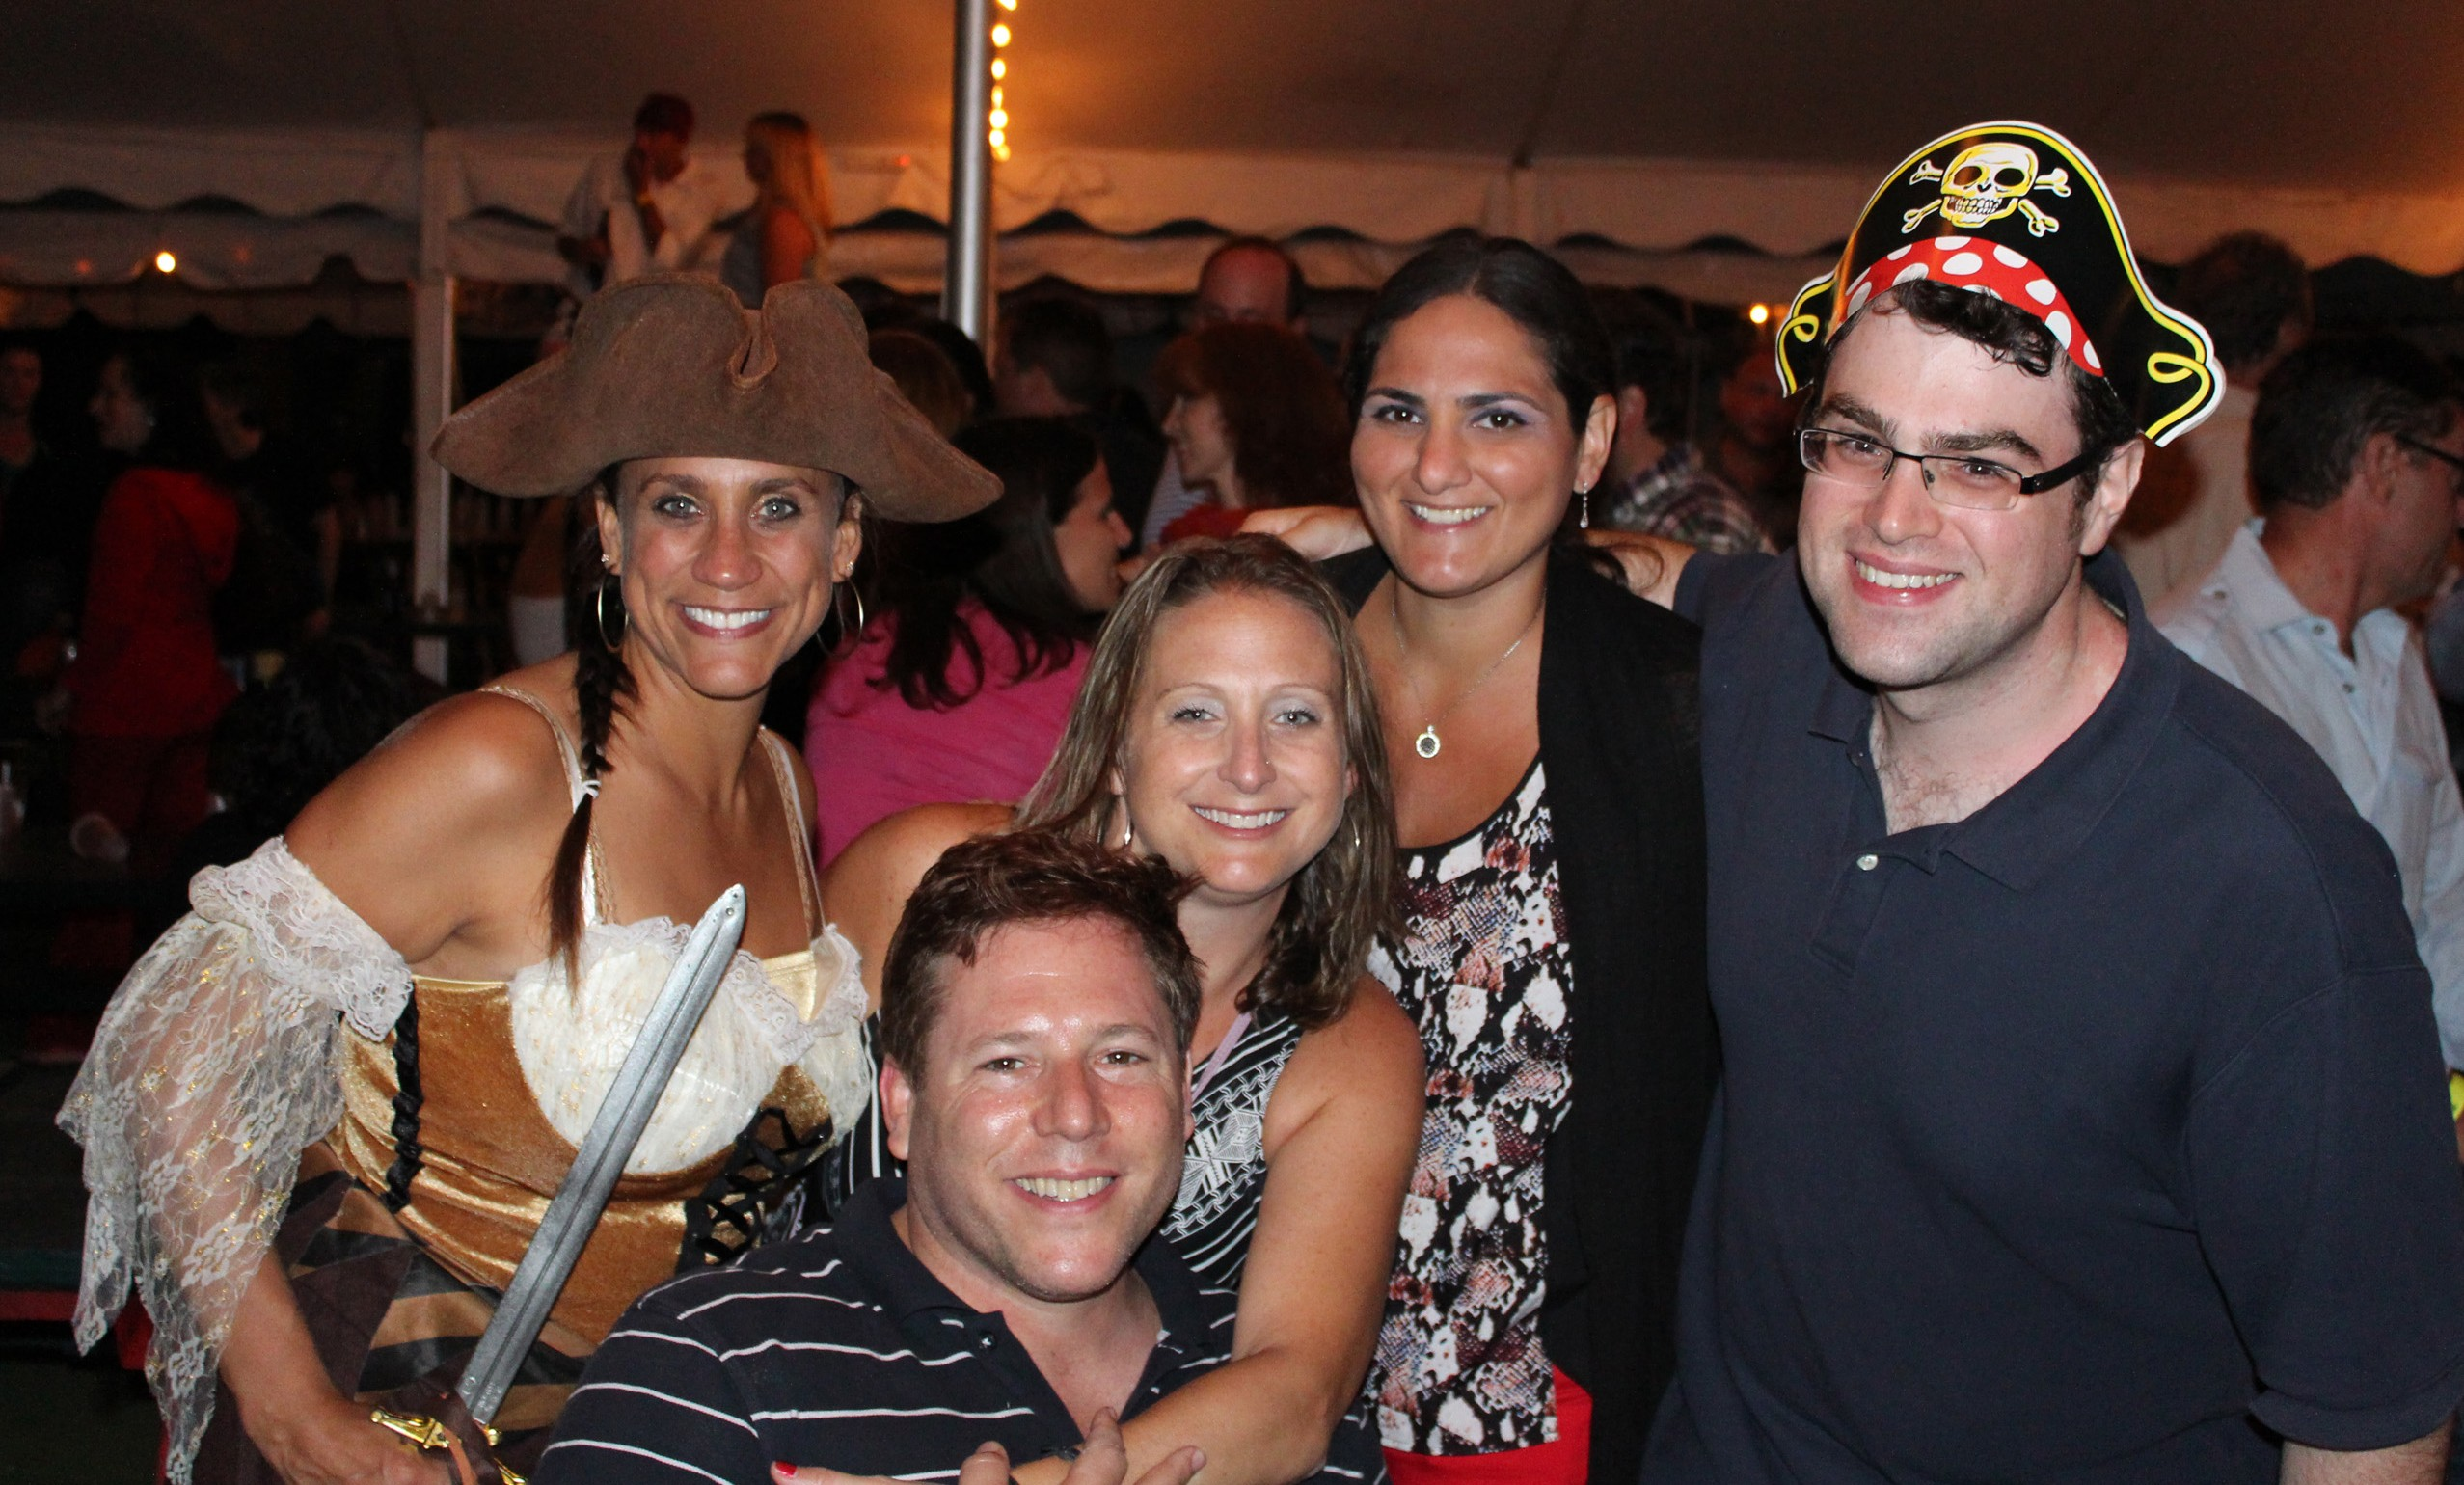 Dinner Parties For Singles Part - 20: JTAu0027s Josh Lipowsky, Right, Is Among The Jewish Singles Enjoying A  Pirate-themed